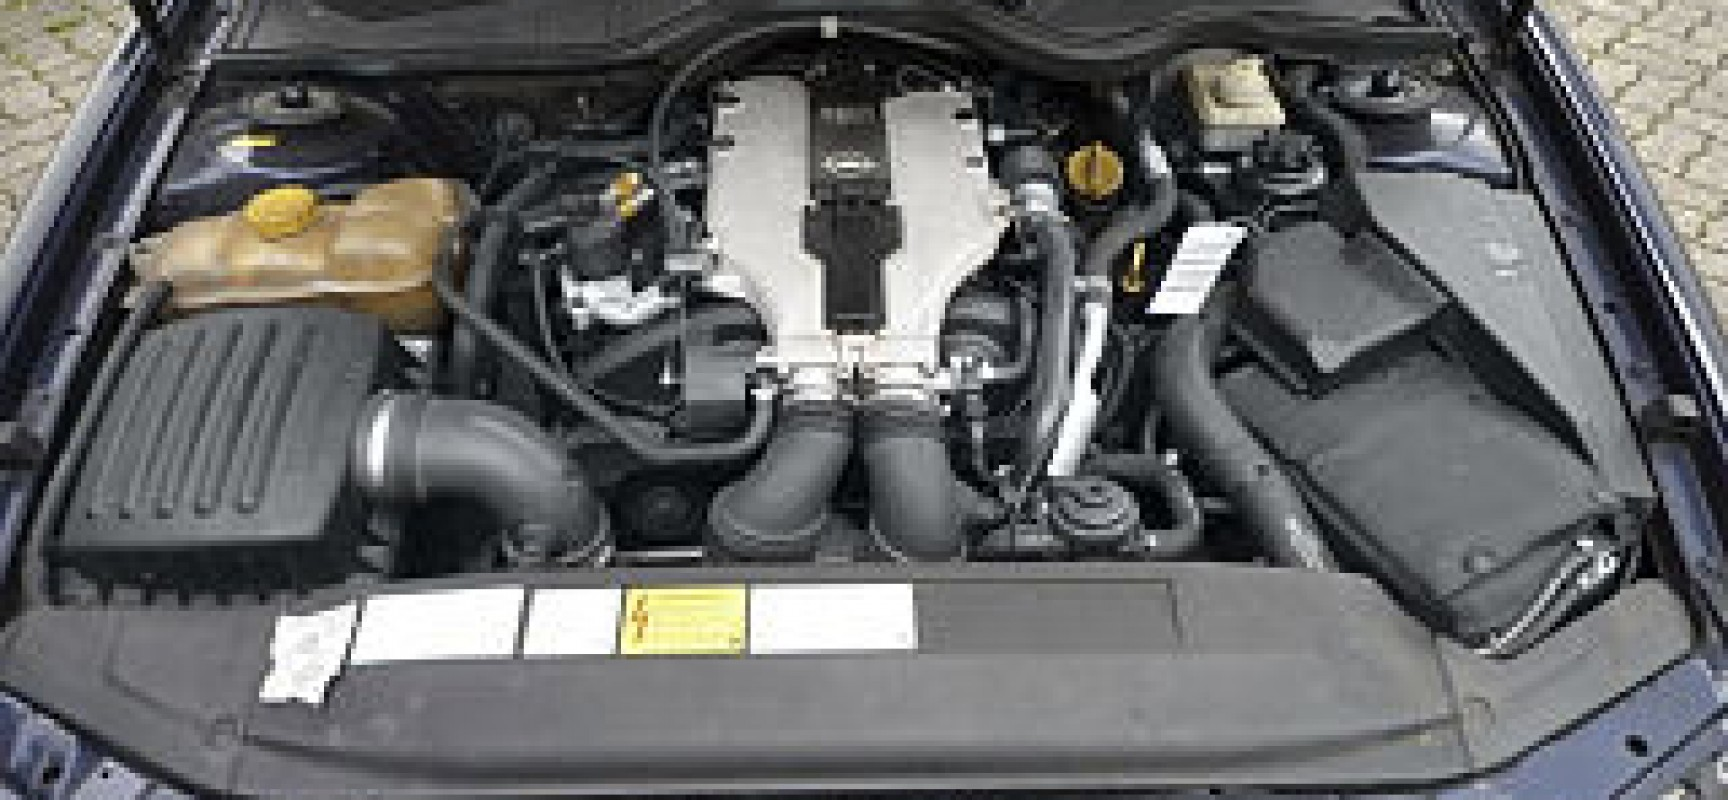 Car Engines: The Internal Combustion 4-Stroke Engine